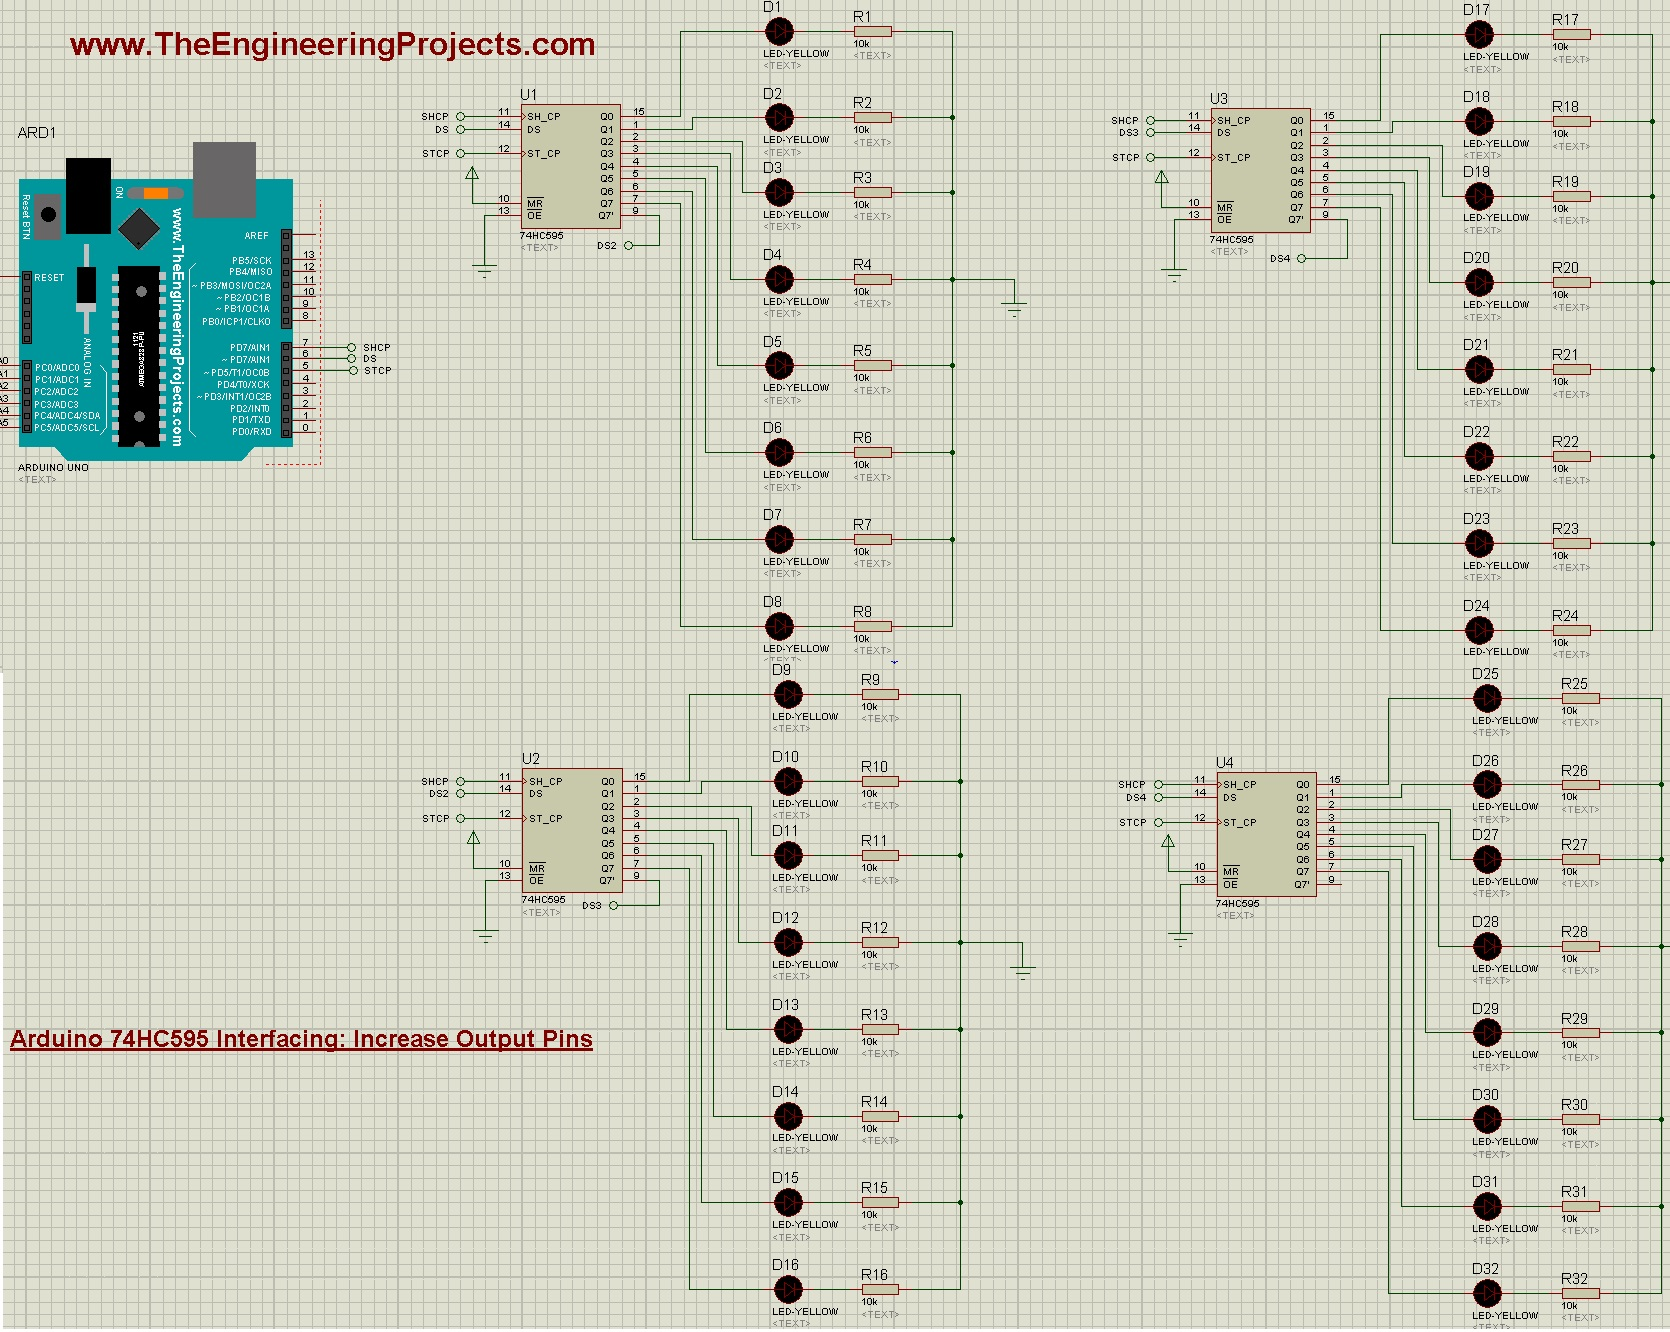 Arduino 74HC595,Arduino 74HC595 interfacing, increase arduino output pins, arduino output increase, 74hc595 arduino